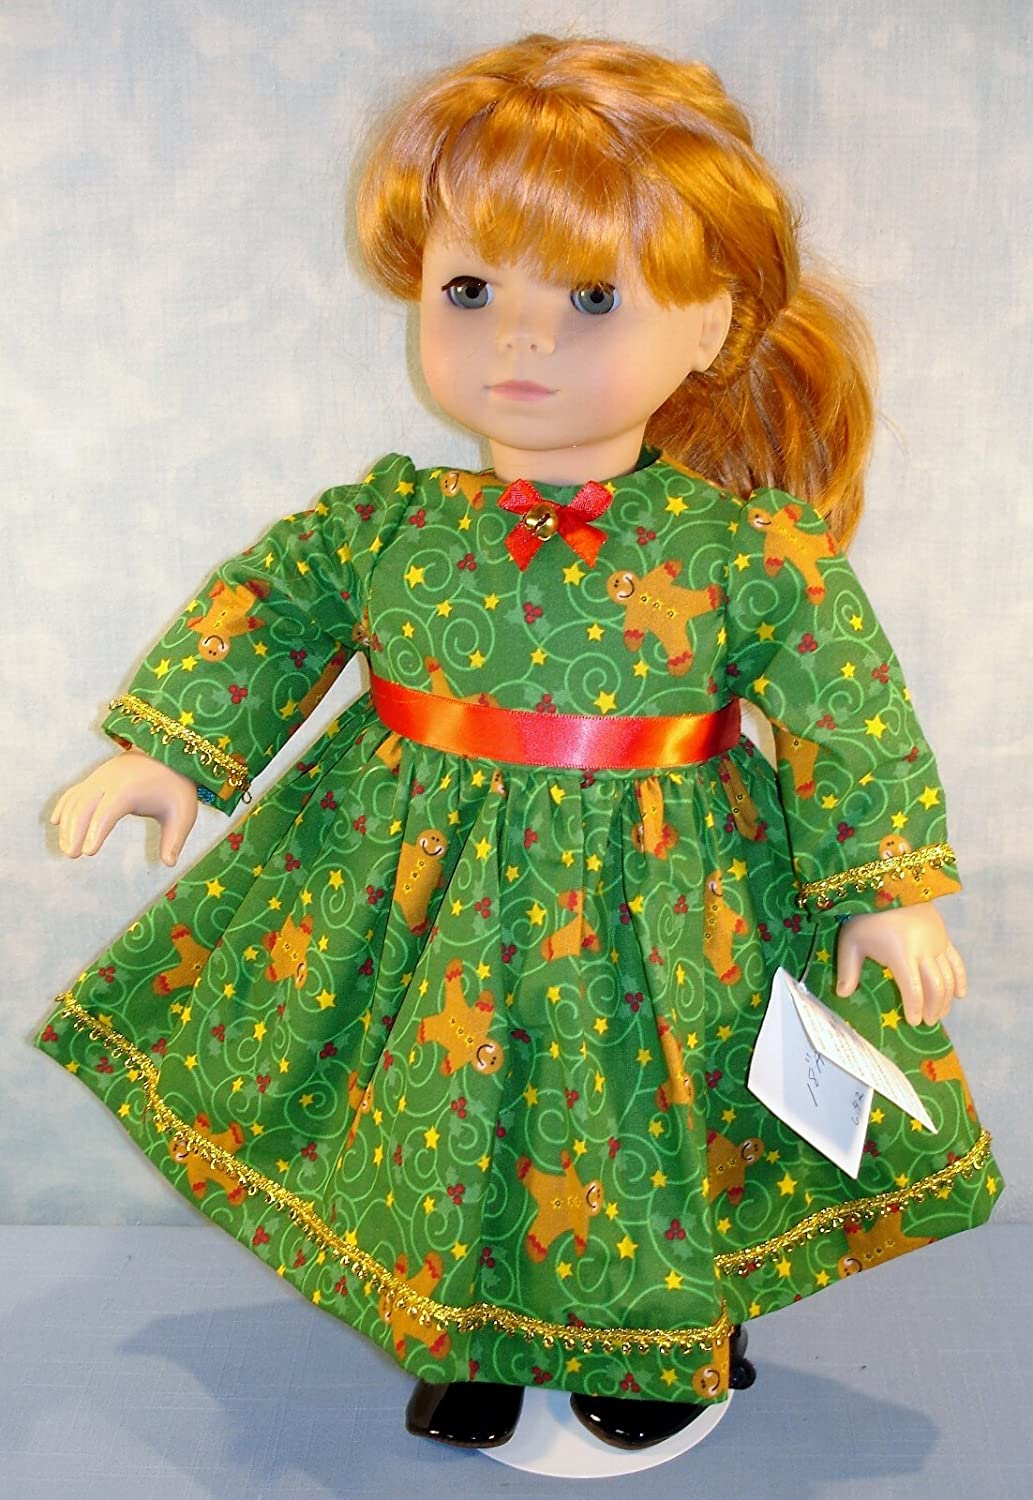 18 Inch Doll Clothes Gingerbread Men on Green Christmas Dress handmade by Jane Ellen for 18 inch dolls